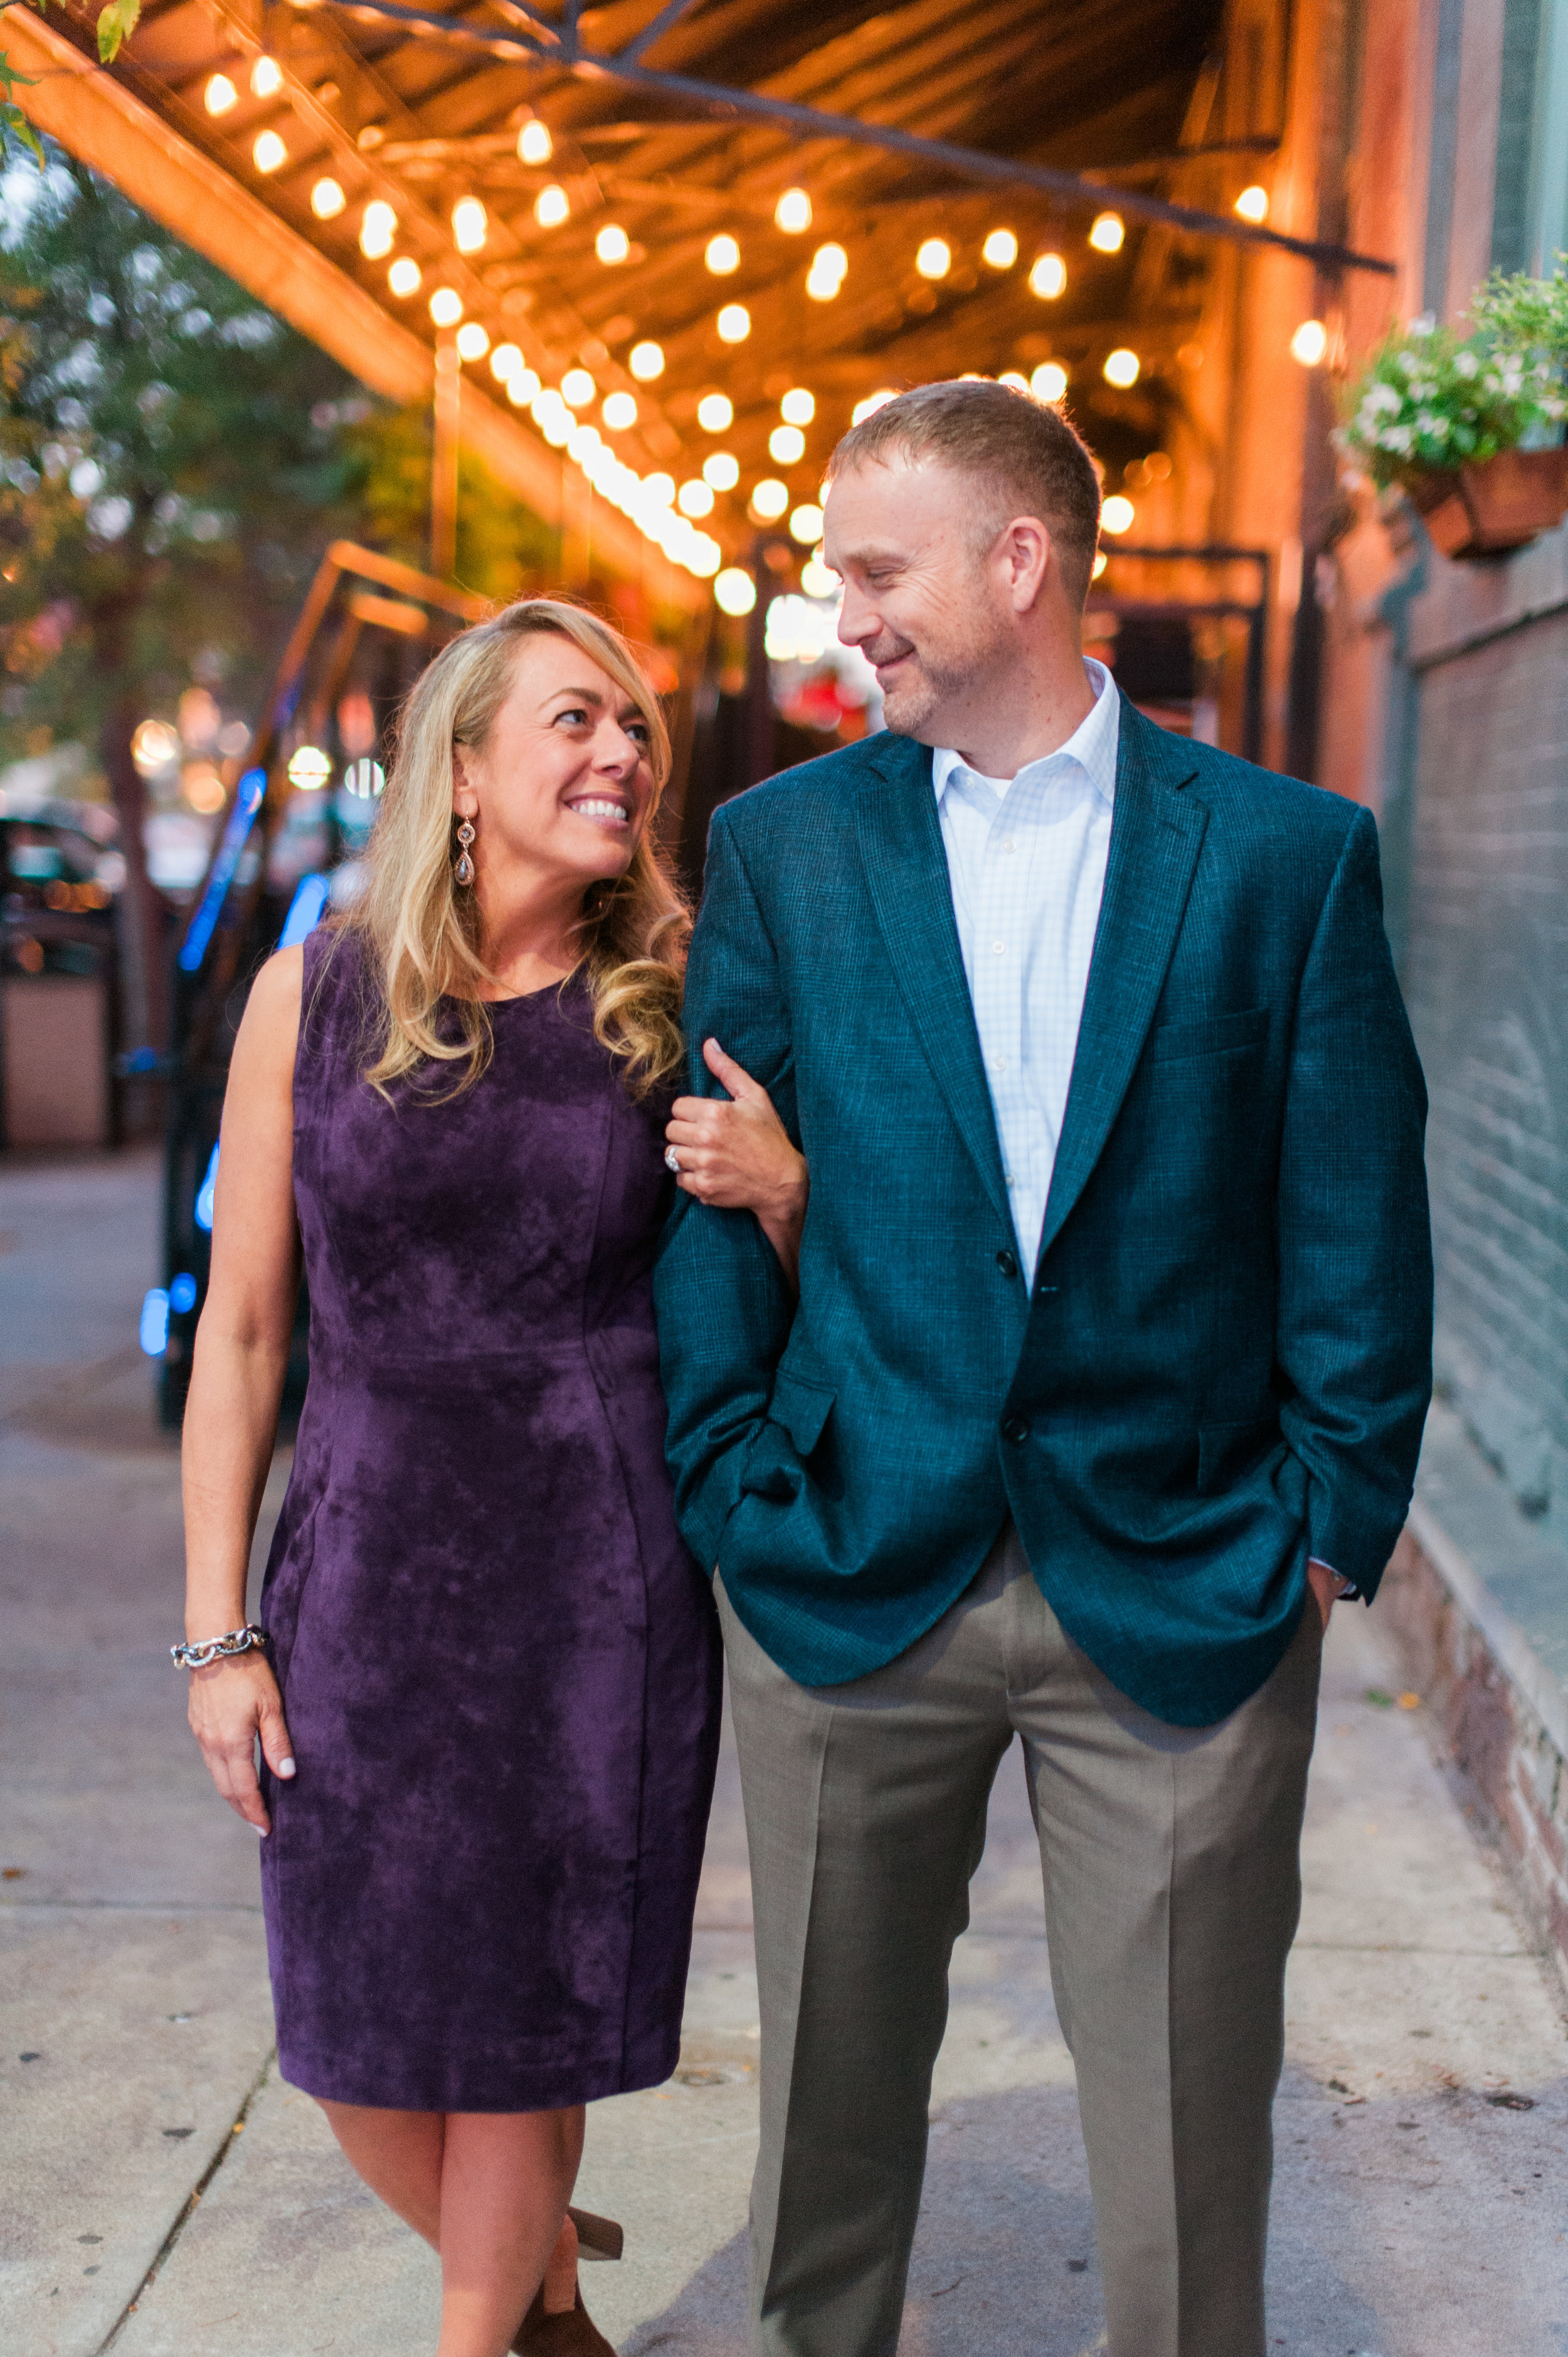 Engagement Session in the Old Market in Omaha